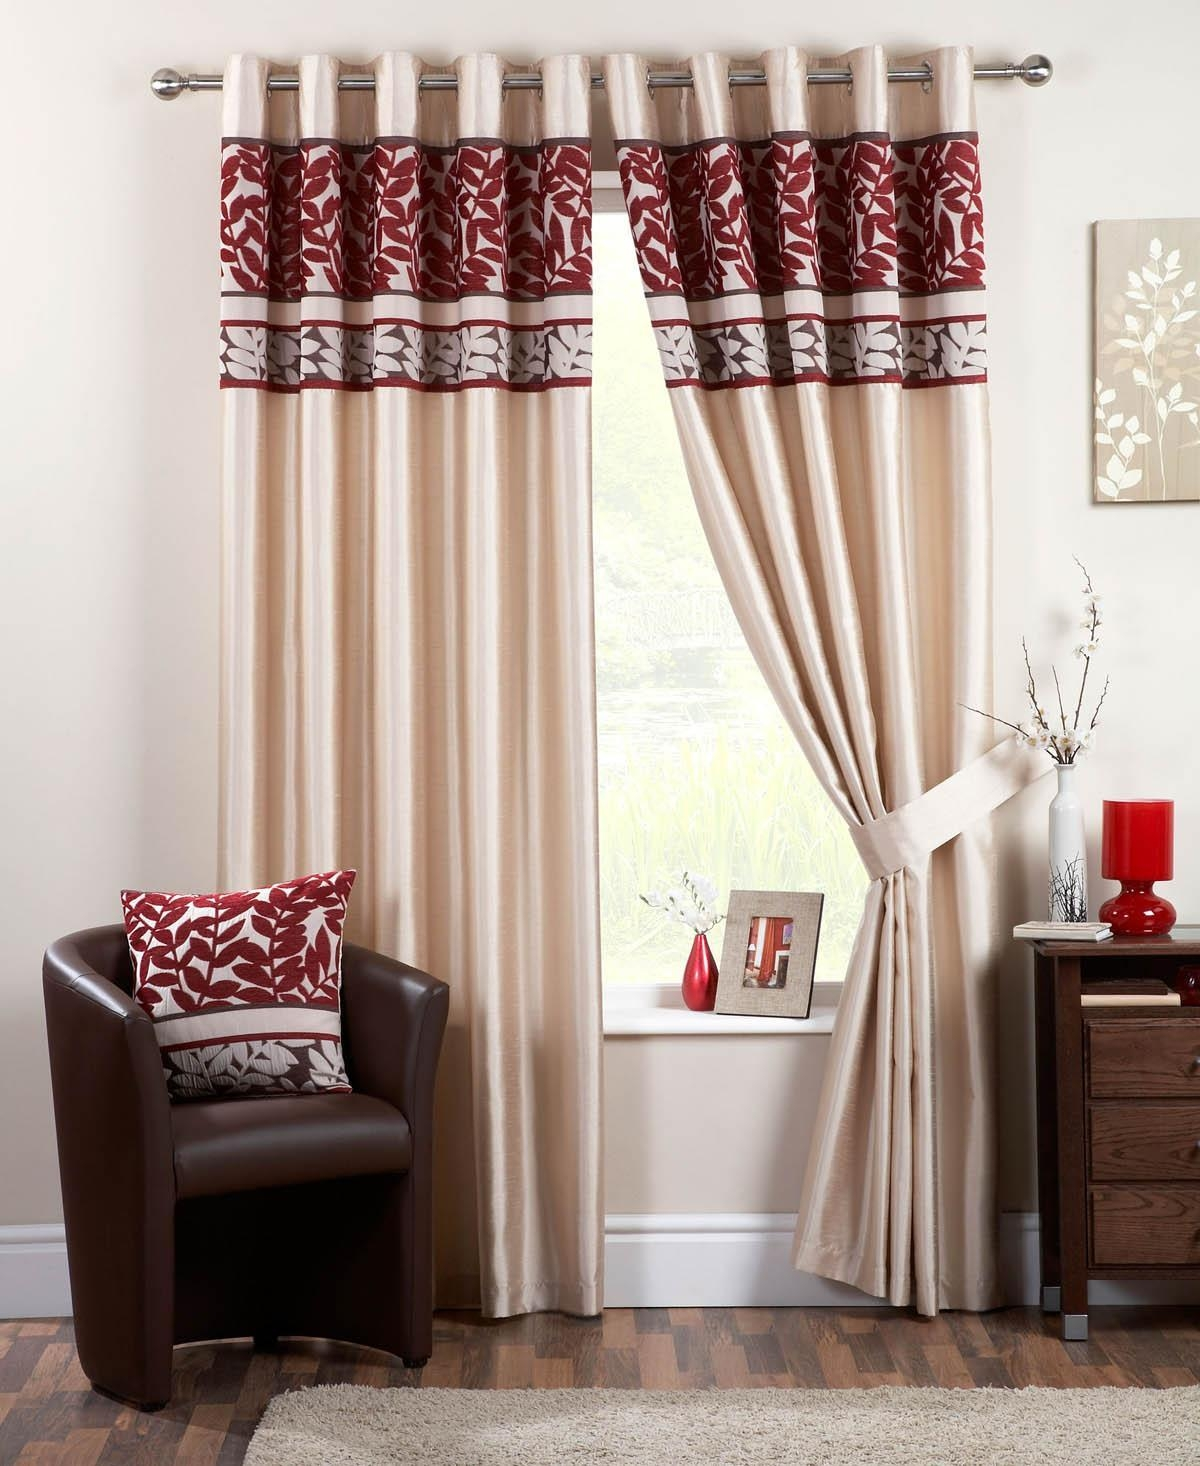 Red Cream Curtains Intended For Lined Cream Curtains (Image 14 of 15)